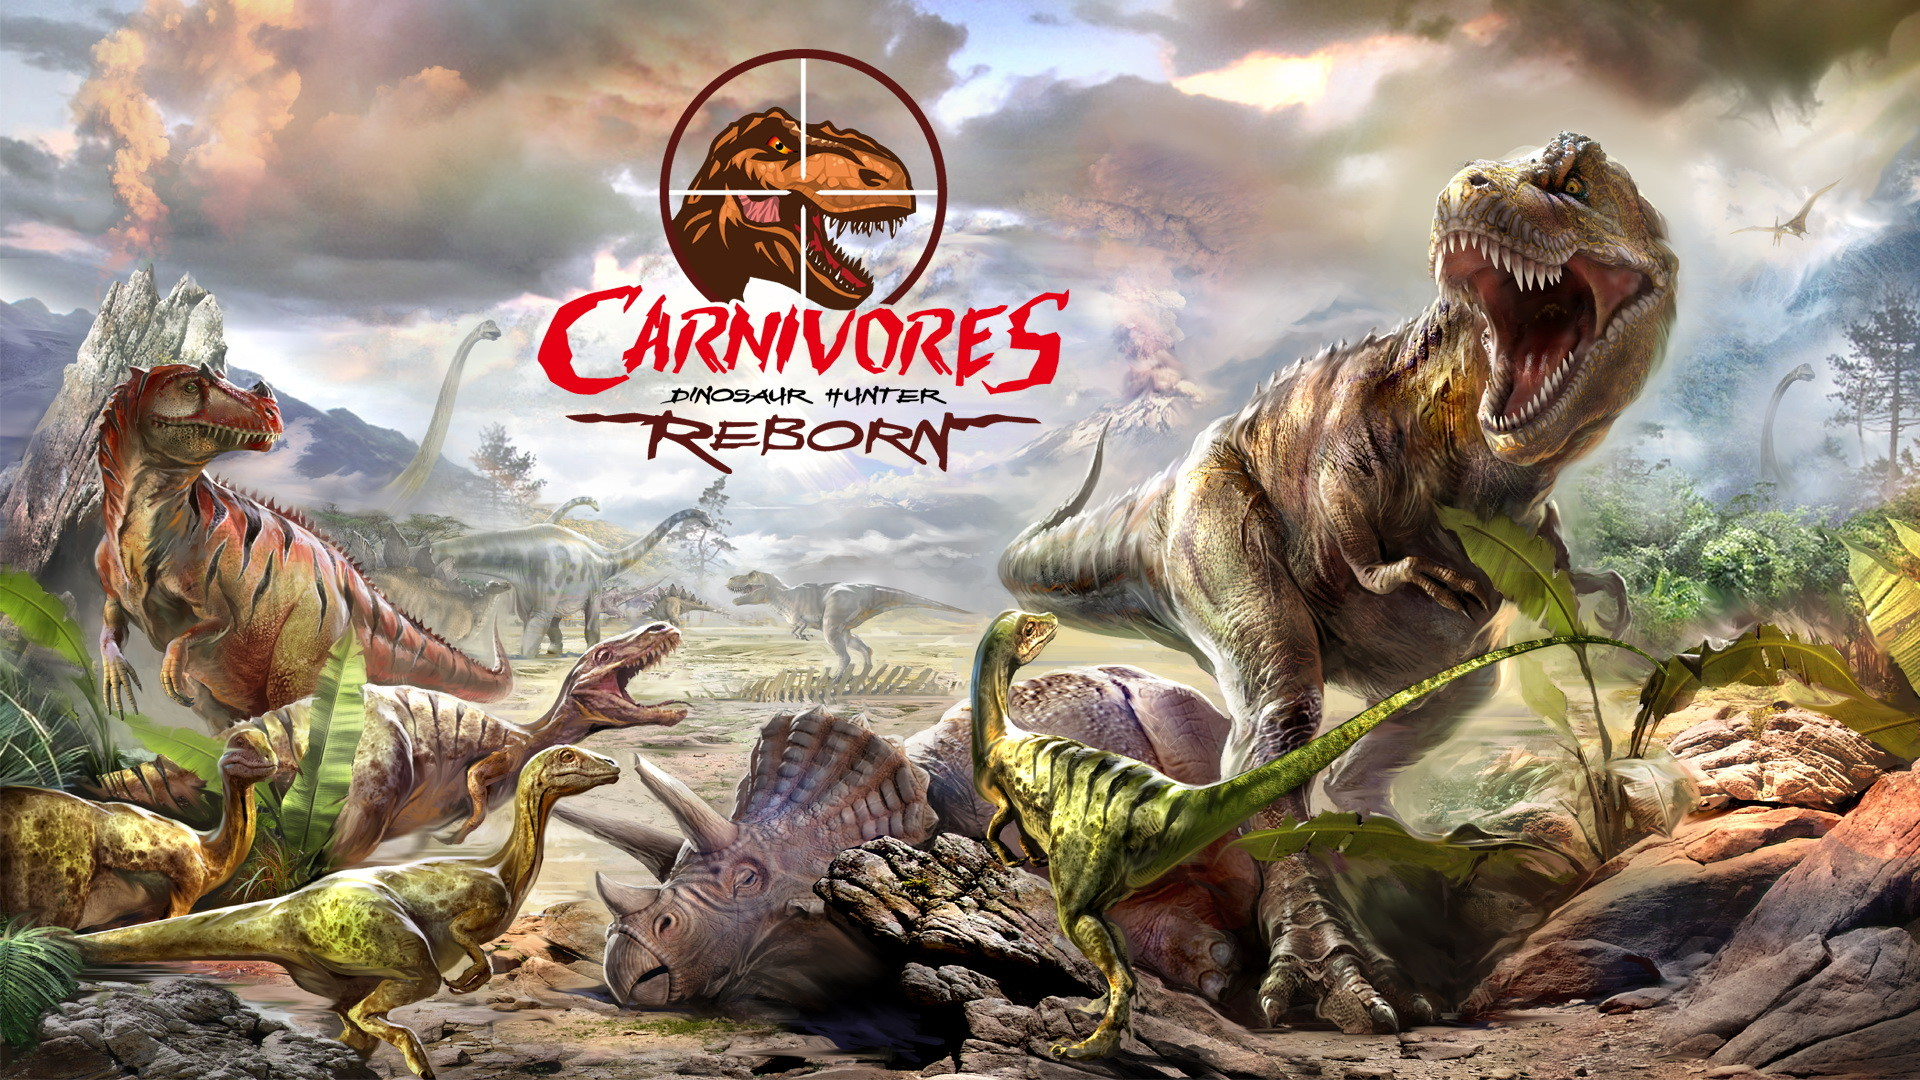 1920x1080 10 Carnivores: Dinosaur Hunter Reborn HD Wallpapers | Backgrounds -  Wallpaper Abyss